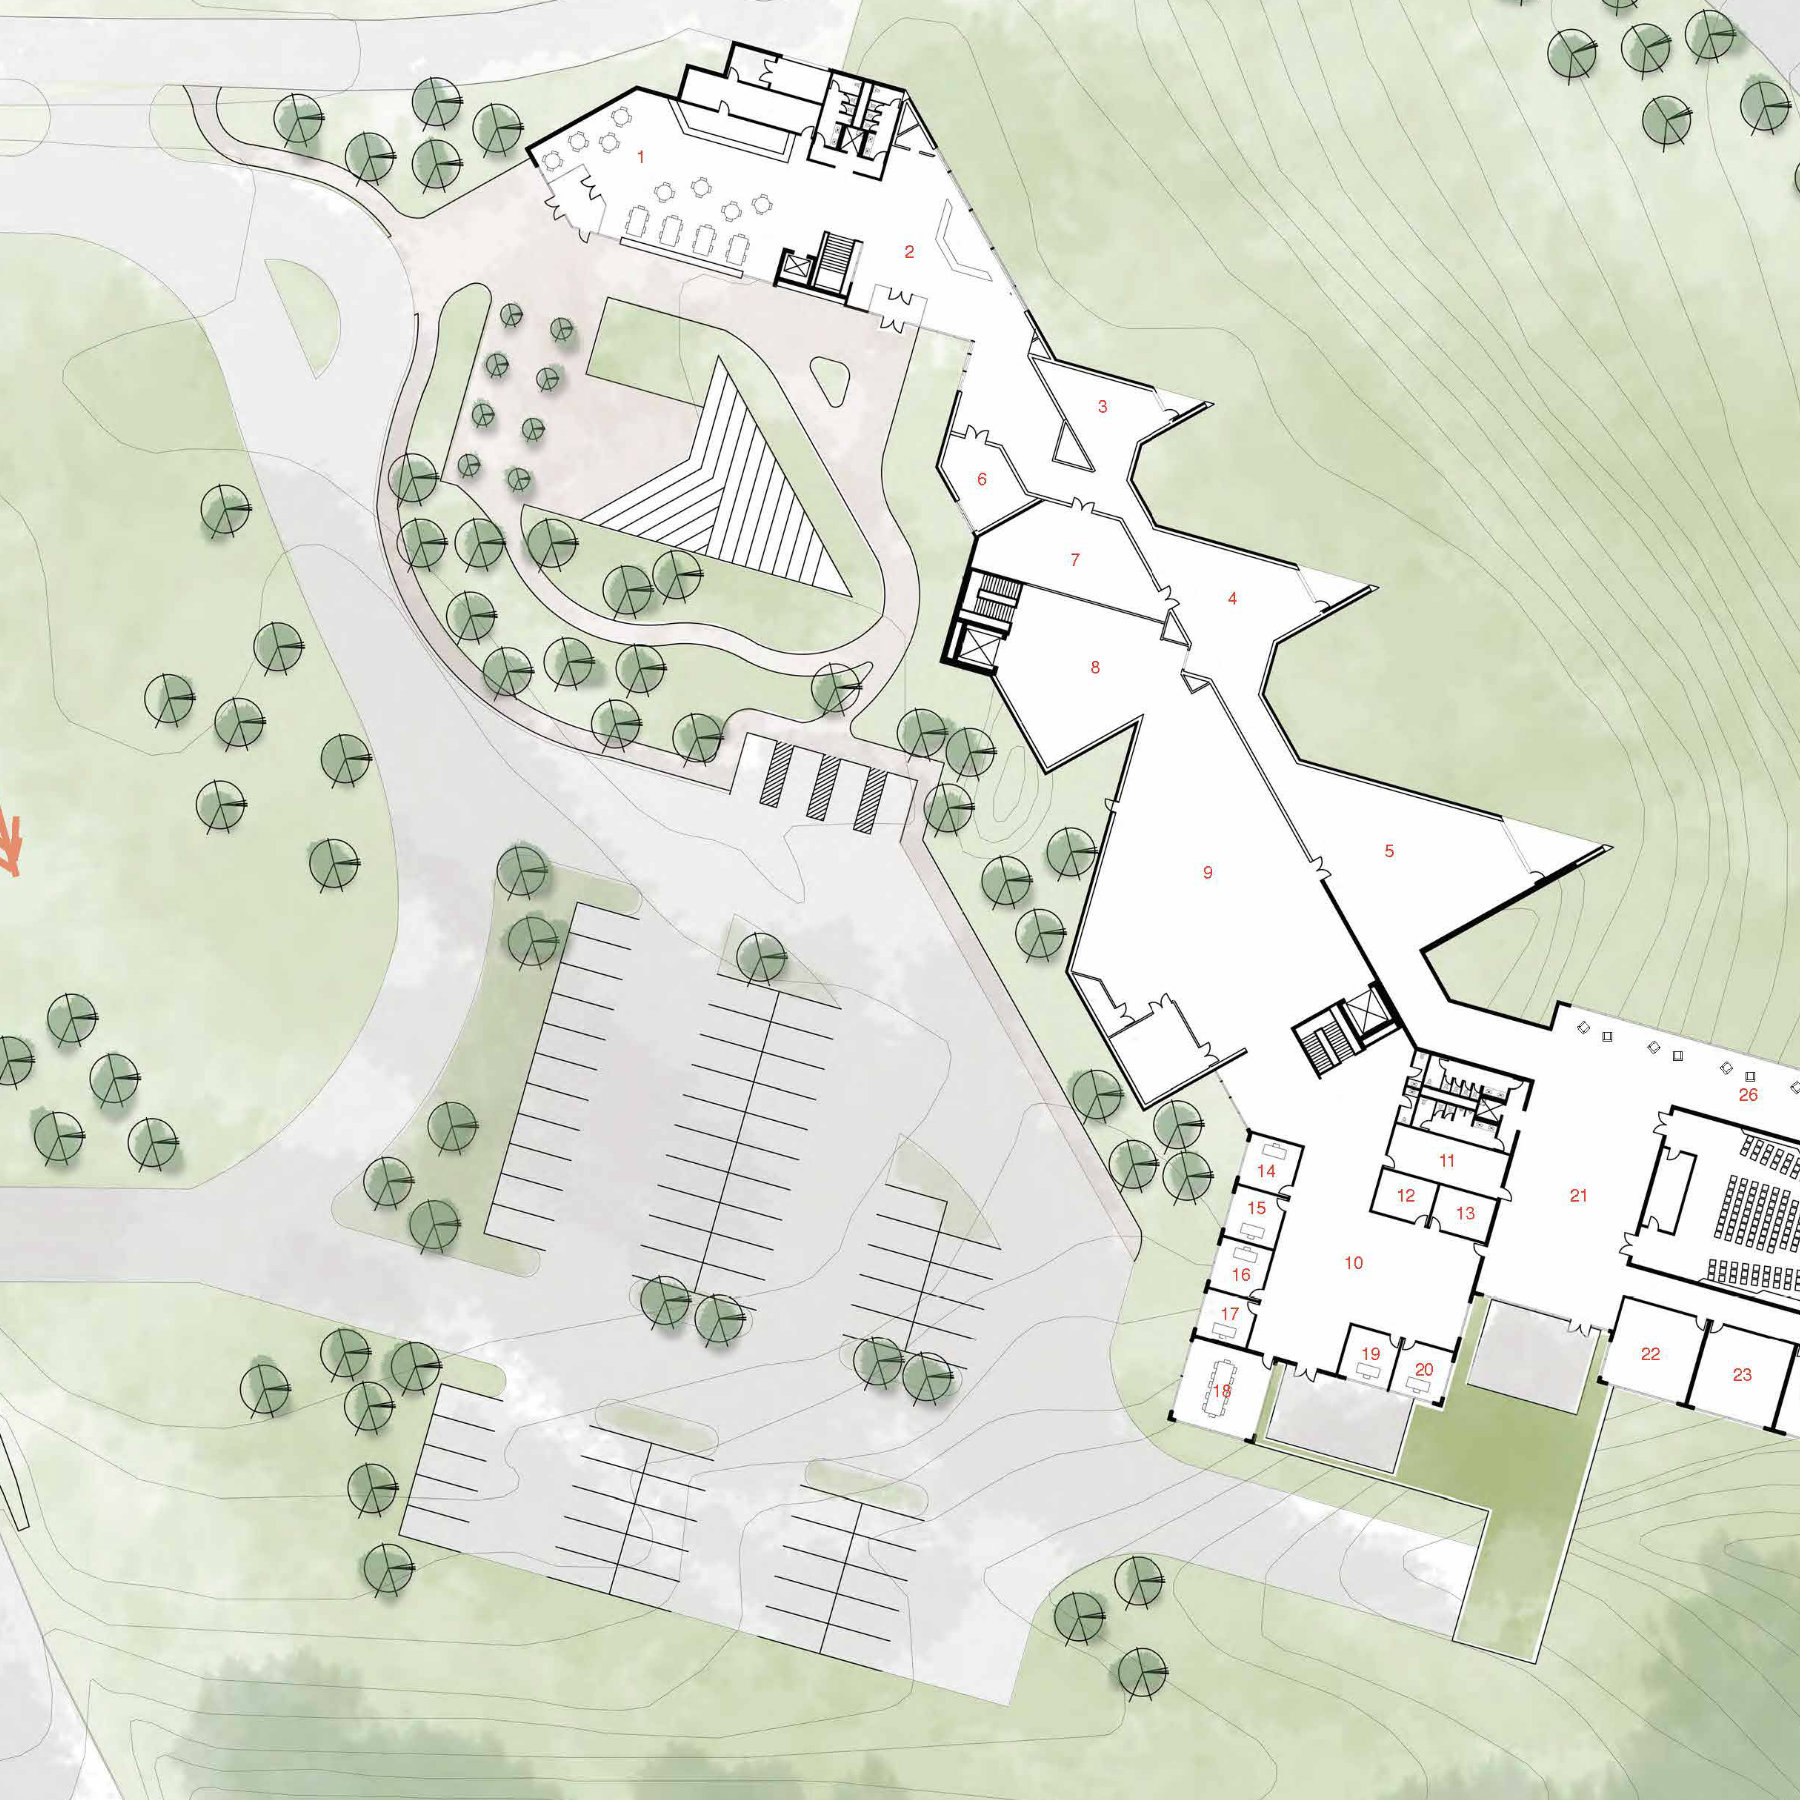 drawing of a site plan with building, green space and parking area